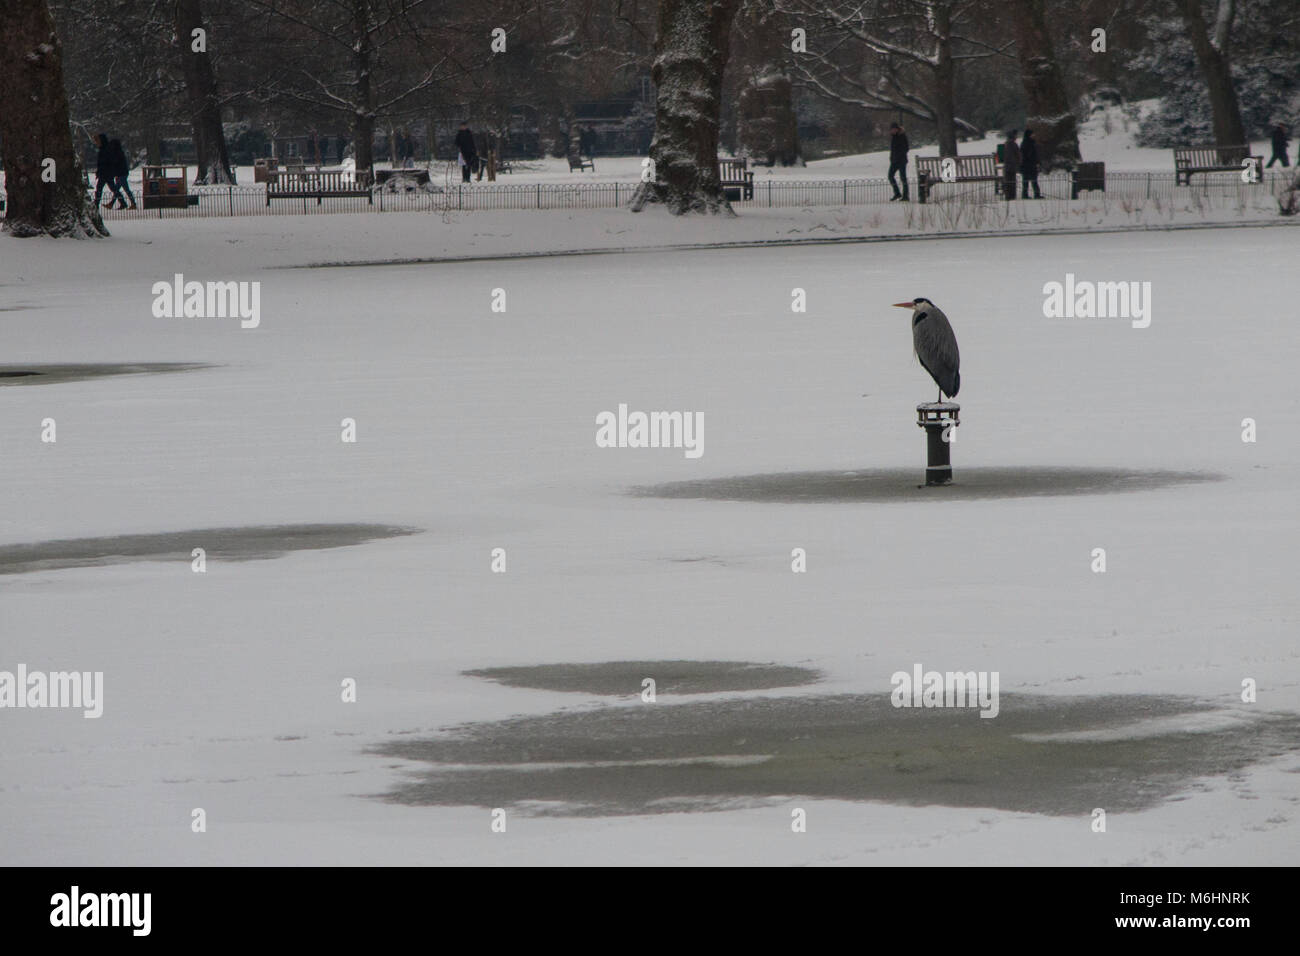 A heron perched on a post over a frozen lake in snowy conditions in St James's Park, London - Stock Image